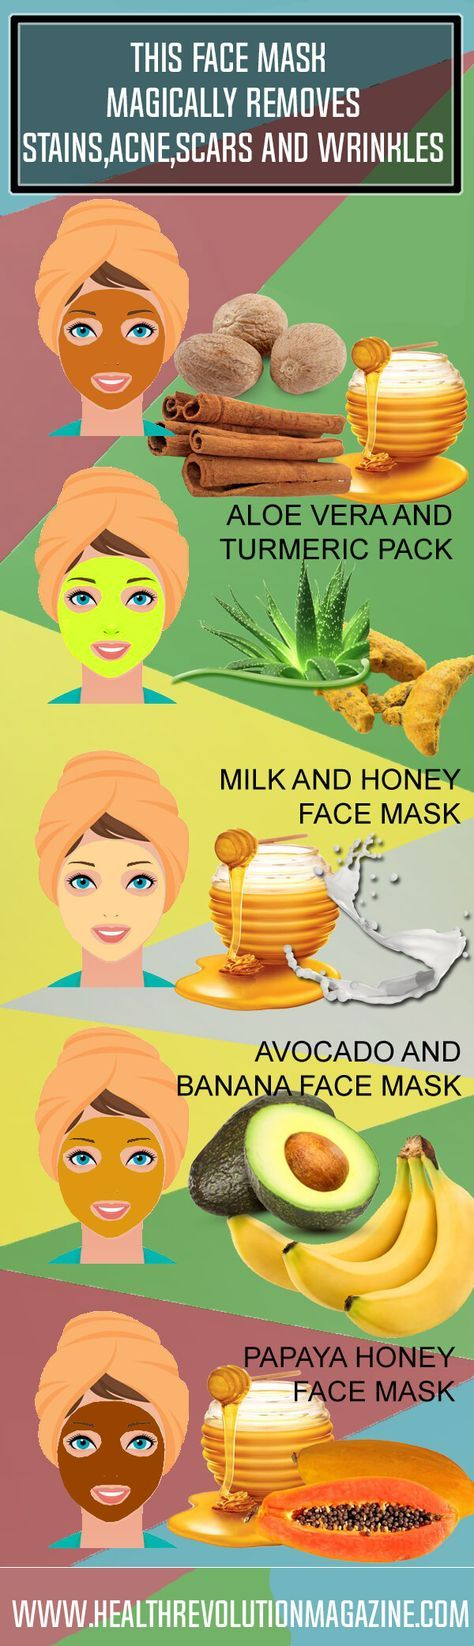 Aging, as being part of our life, makes our skin not so attractive and requires special care and commitment not some overnight surprise. Since the skin on our face is very sensitive, we must be careful with the products we use. Many of them are full with chemicals that are harmful for the skin, so Continue Reading